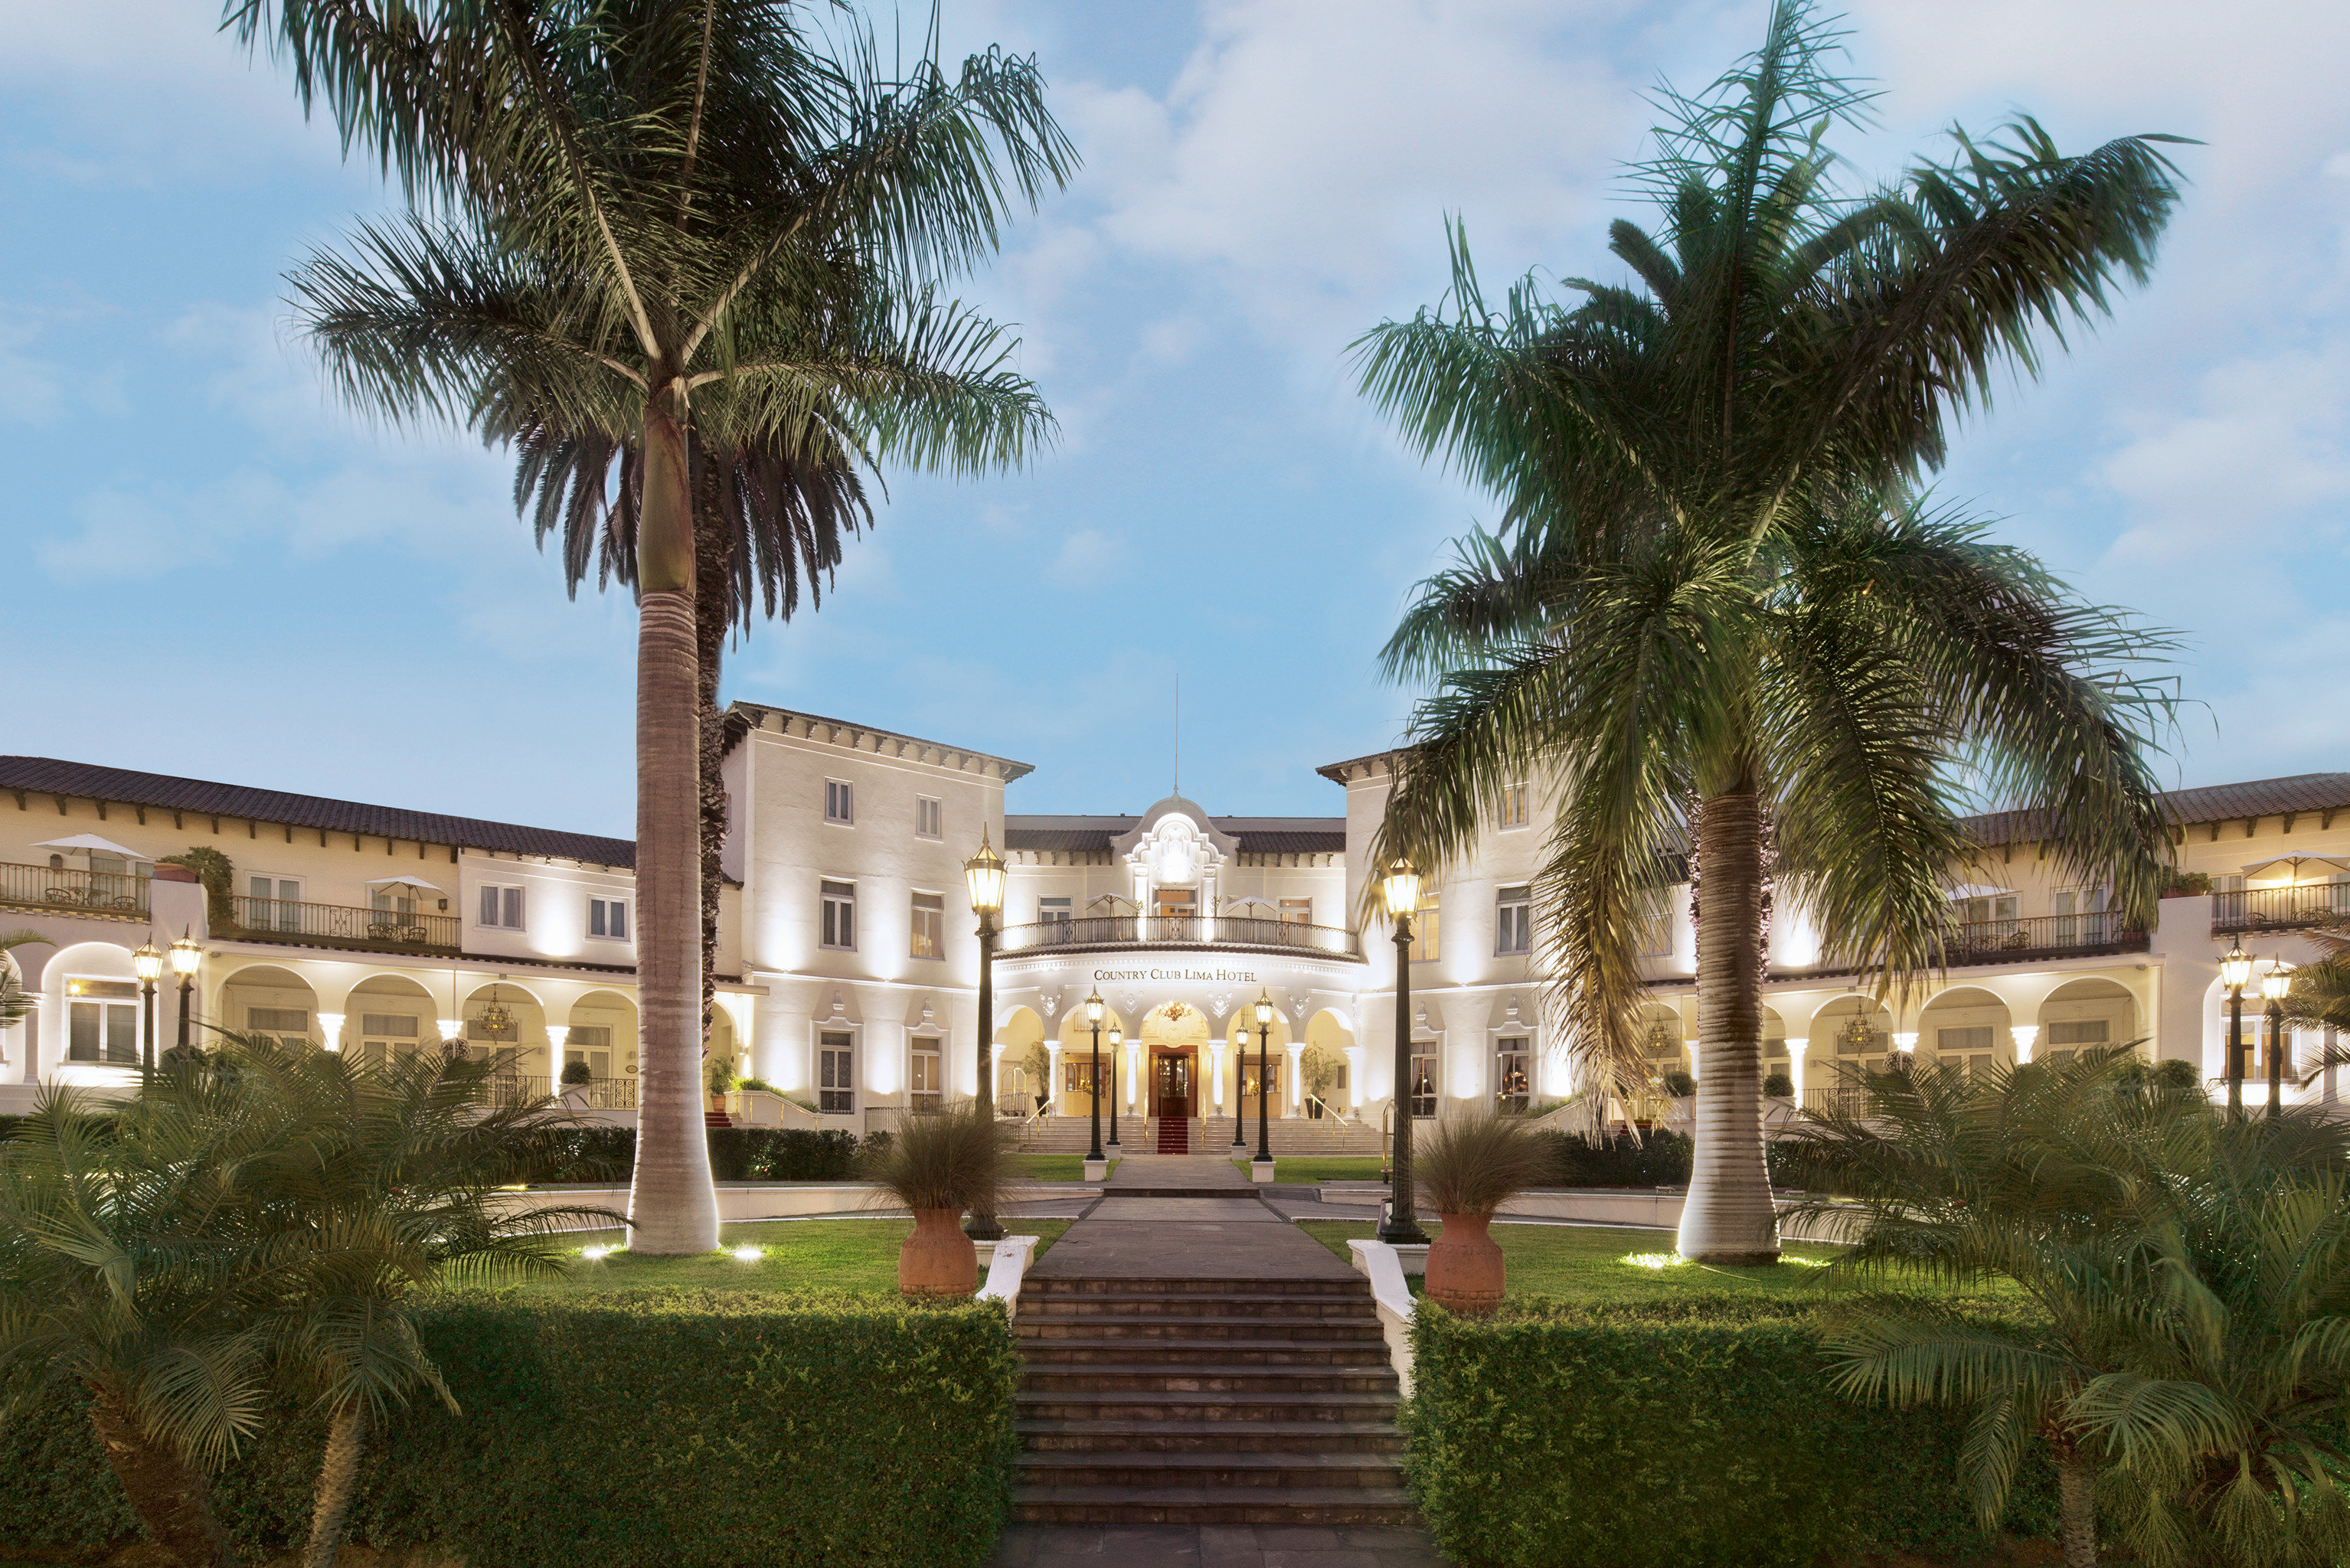 Architecture Boutique Hotels Buildings Exterior Hotels Resort Romance sky tree grass property plant building palace palm arecales plaza mansion home hacienda Villa Courtyard Garden